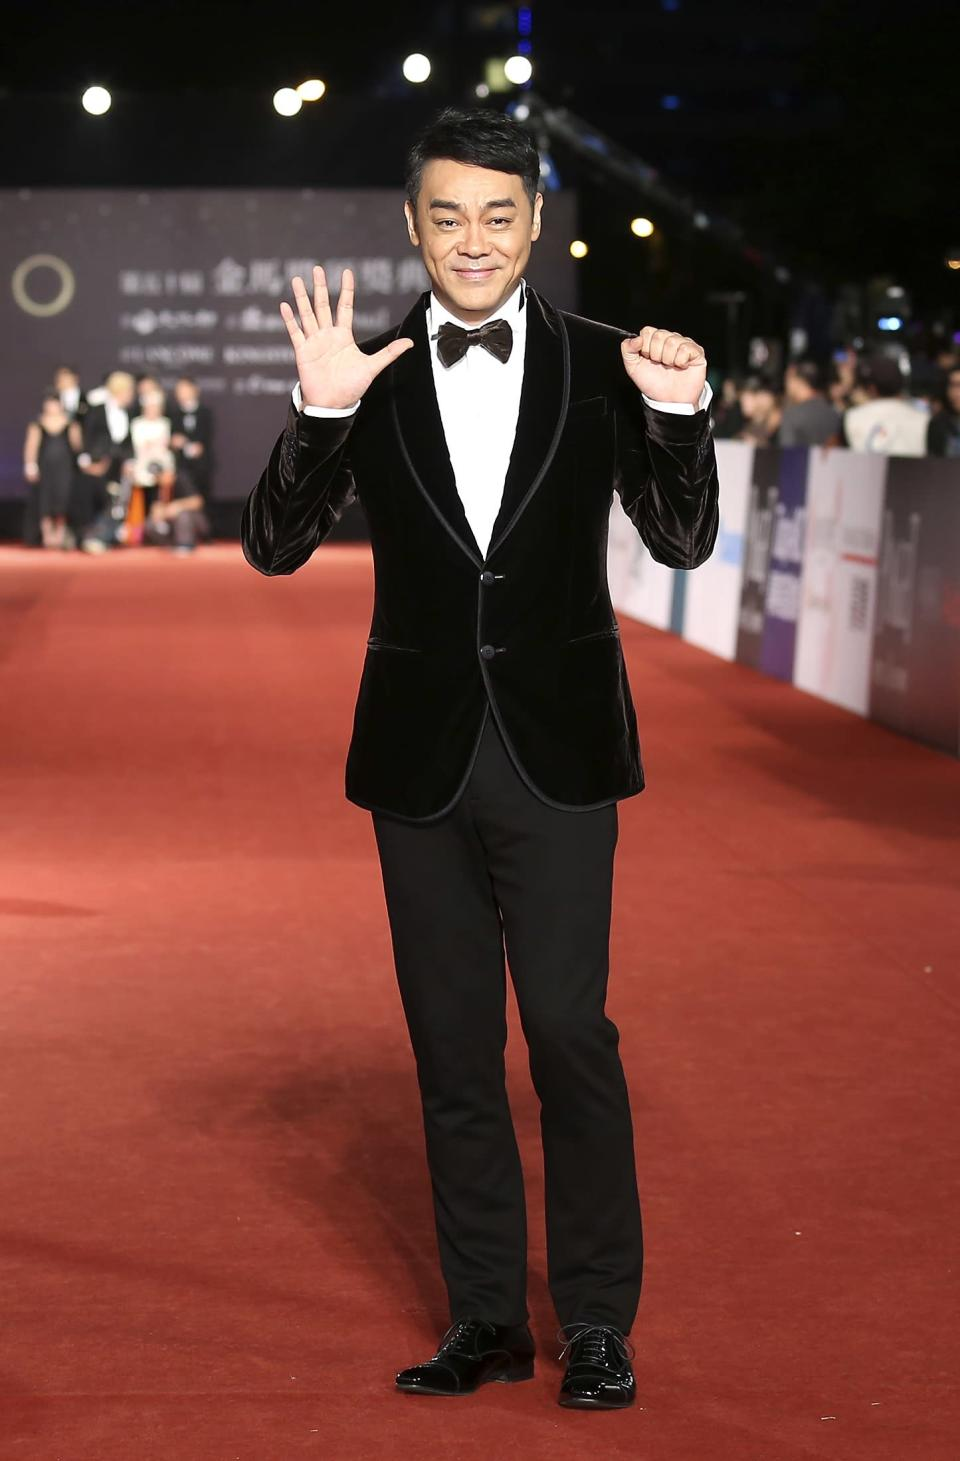 Hong Kong actor Sean Lau poses for photographers on the red carpet at the 50th Golden Horse Film Awards in Taipei November 23, 2013. REUTERS/Patrick Lin (TAIWAN - Tags: ENTERTAINMENT)